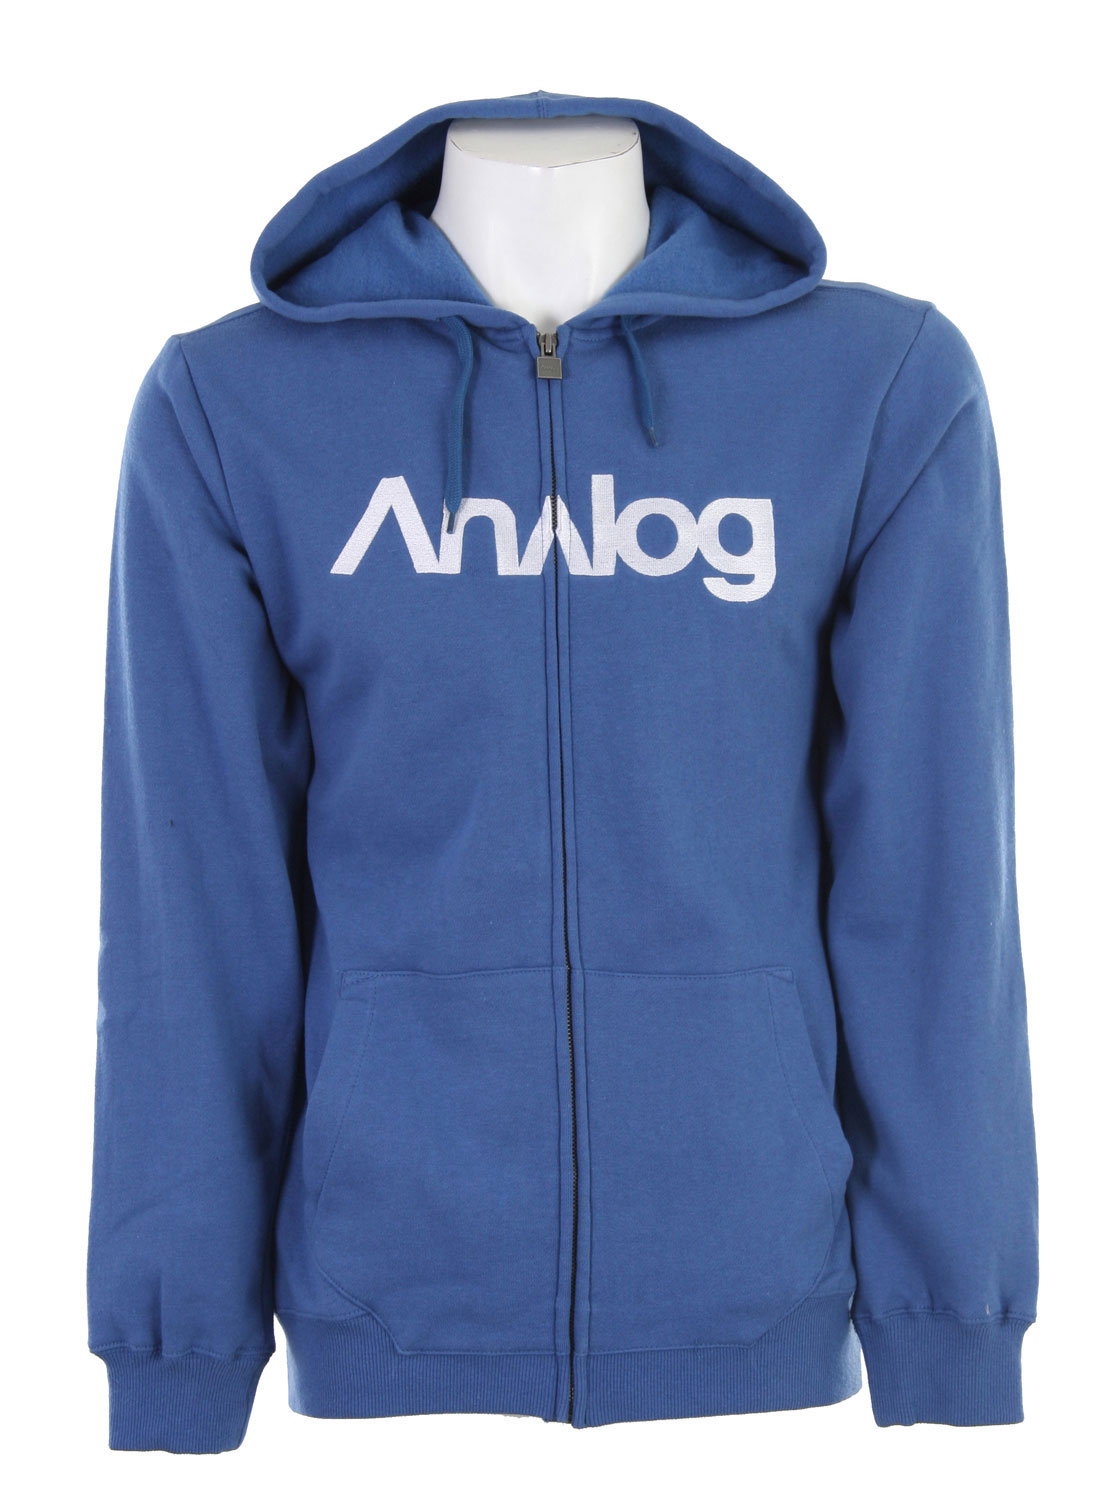 Snowboard The Analog Analogo Full Zip hoodie is a great classic hoodie that shows your snowboarding style. The hoodie has a traditional cut so that you have the flexibility and freedom to move. The fabric is a cotton-polyester blend so that it can breathe when you need it to breathe. The embroidered Analog logo shows that you have class along with style and still shows that you mean business. It is hard to beat a great wearing hoodie like this one.Key Features of the Analog Analogo Full Zip Hoodie: Regular Fit 80% Cotton 20% Polyester 300 gm Fleece Full zip with embroidered logo - $35.95